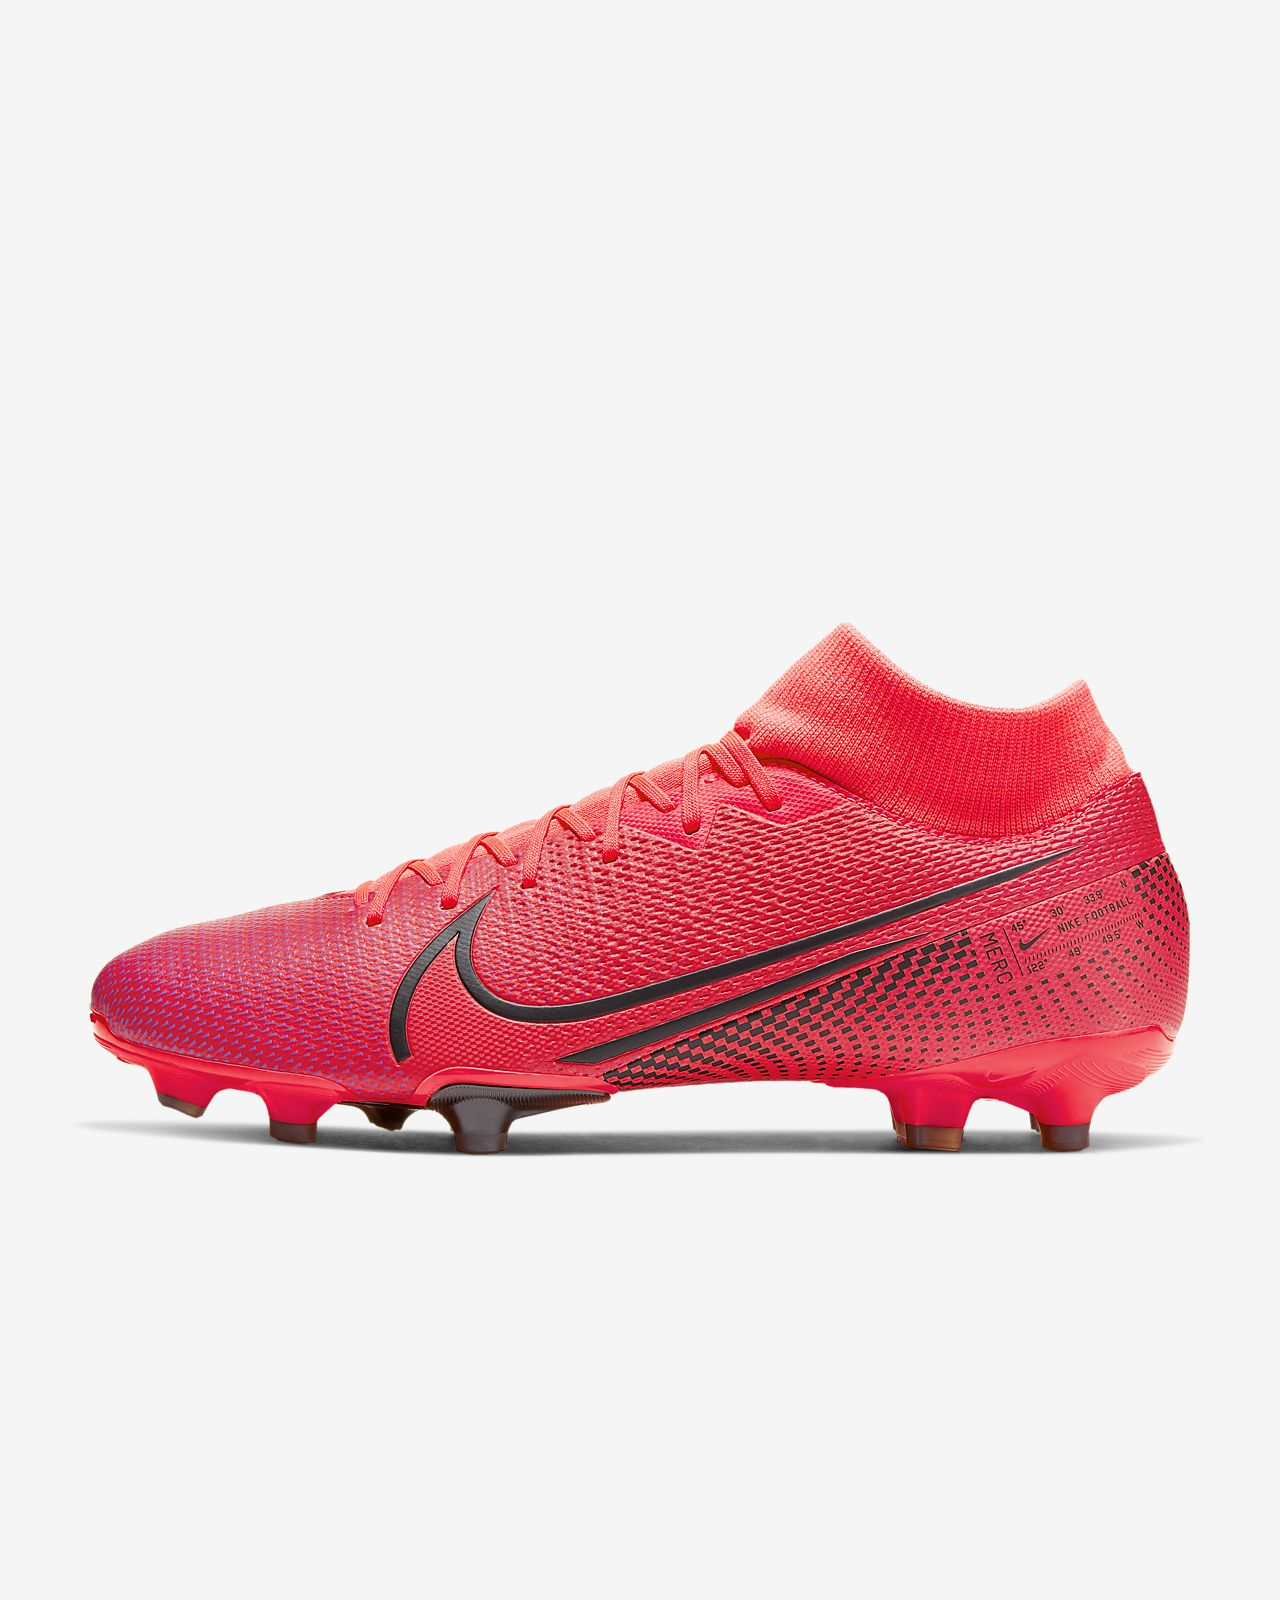 Nike Take the Mercurial Superfly and Vapor To